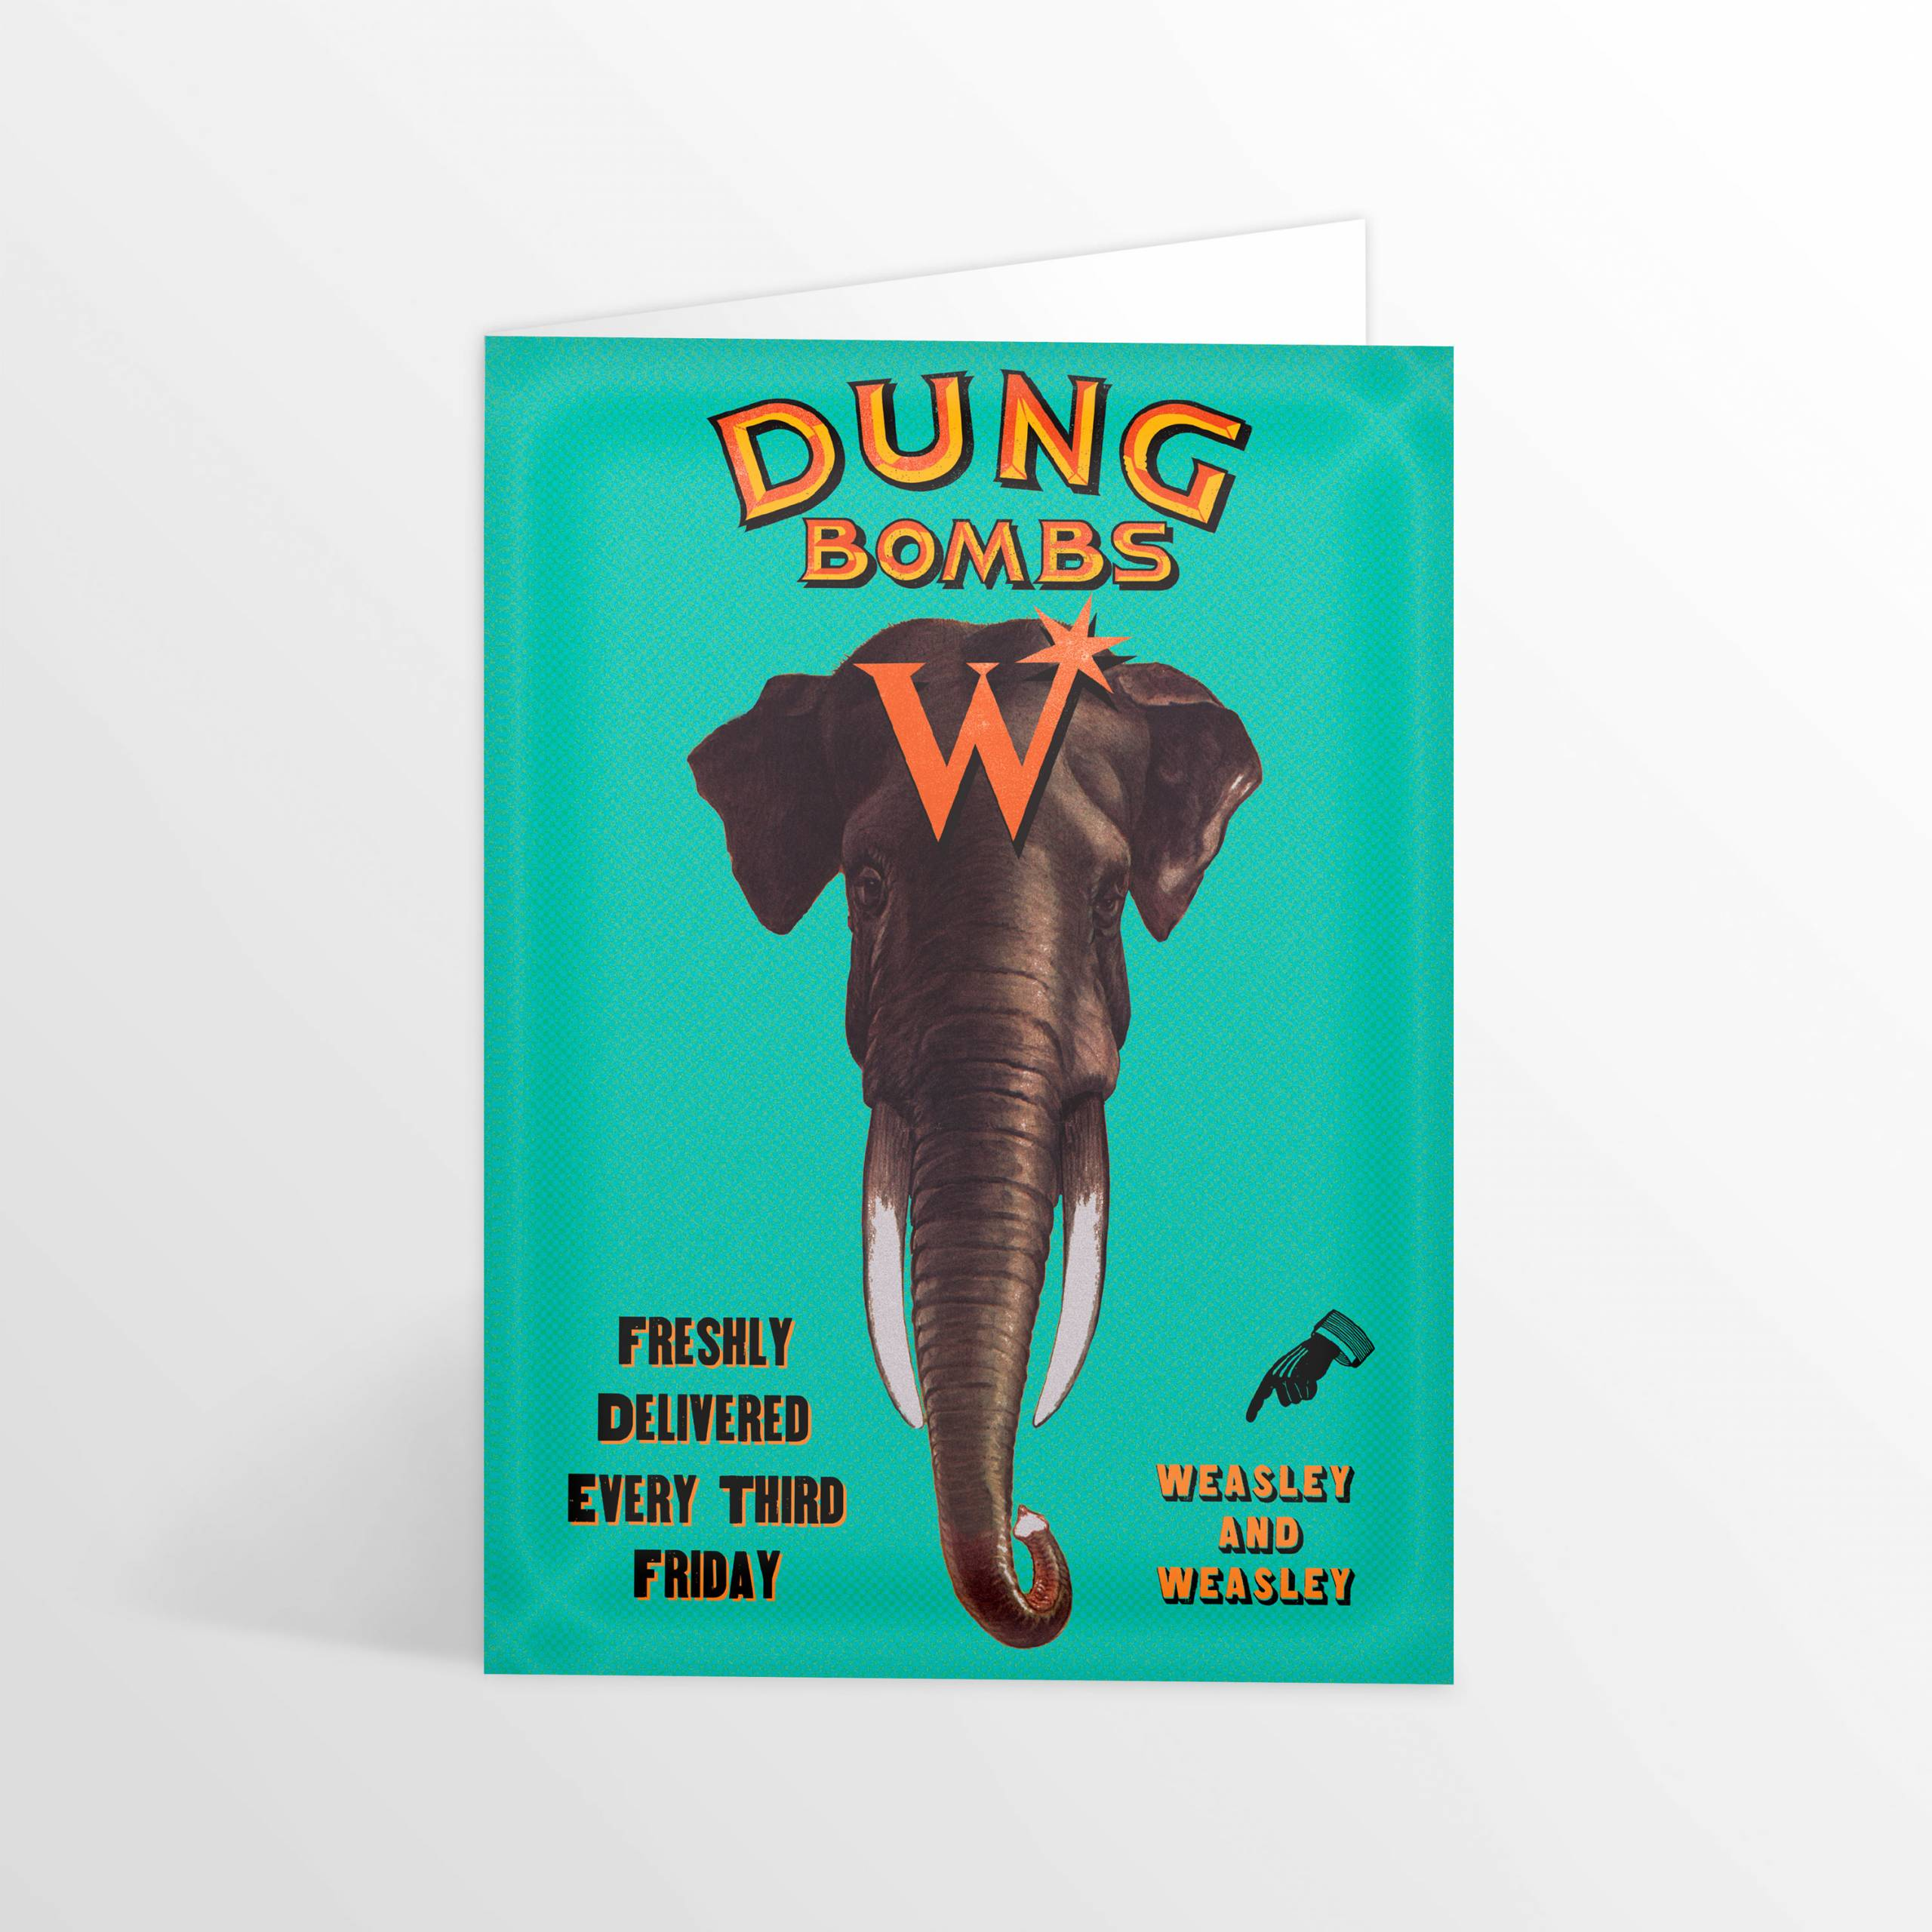 Notecard showing an advertisement for Dung Bombs